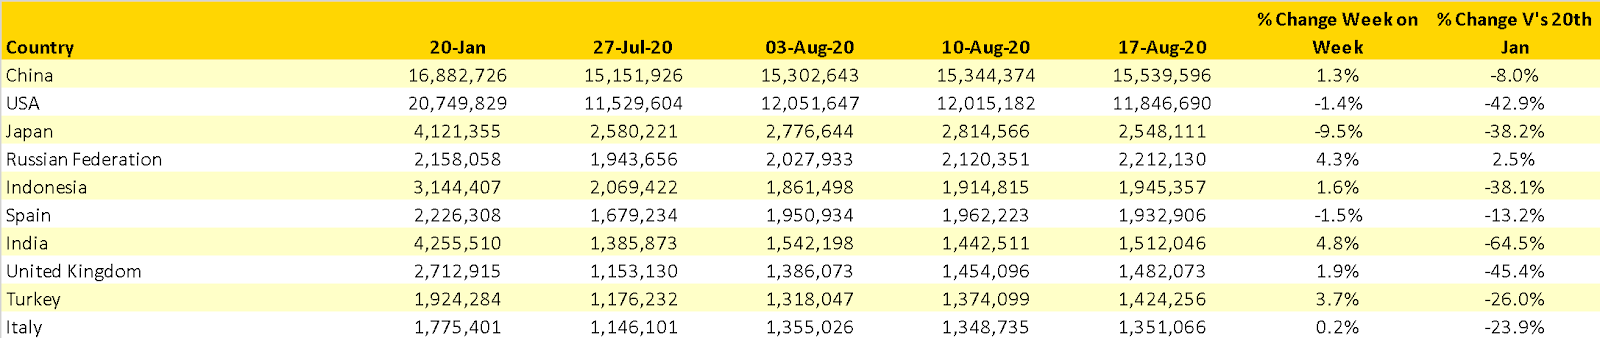 Table 2- Scheduled Capacity, Top 10 Countries Markets